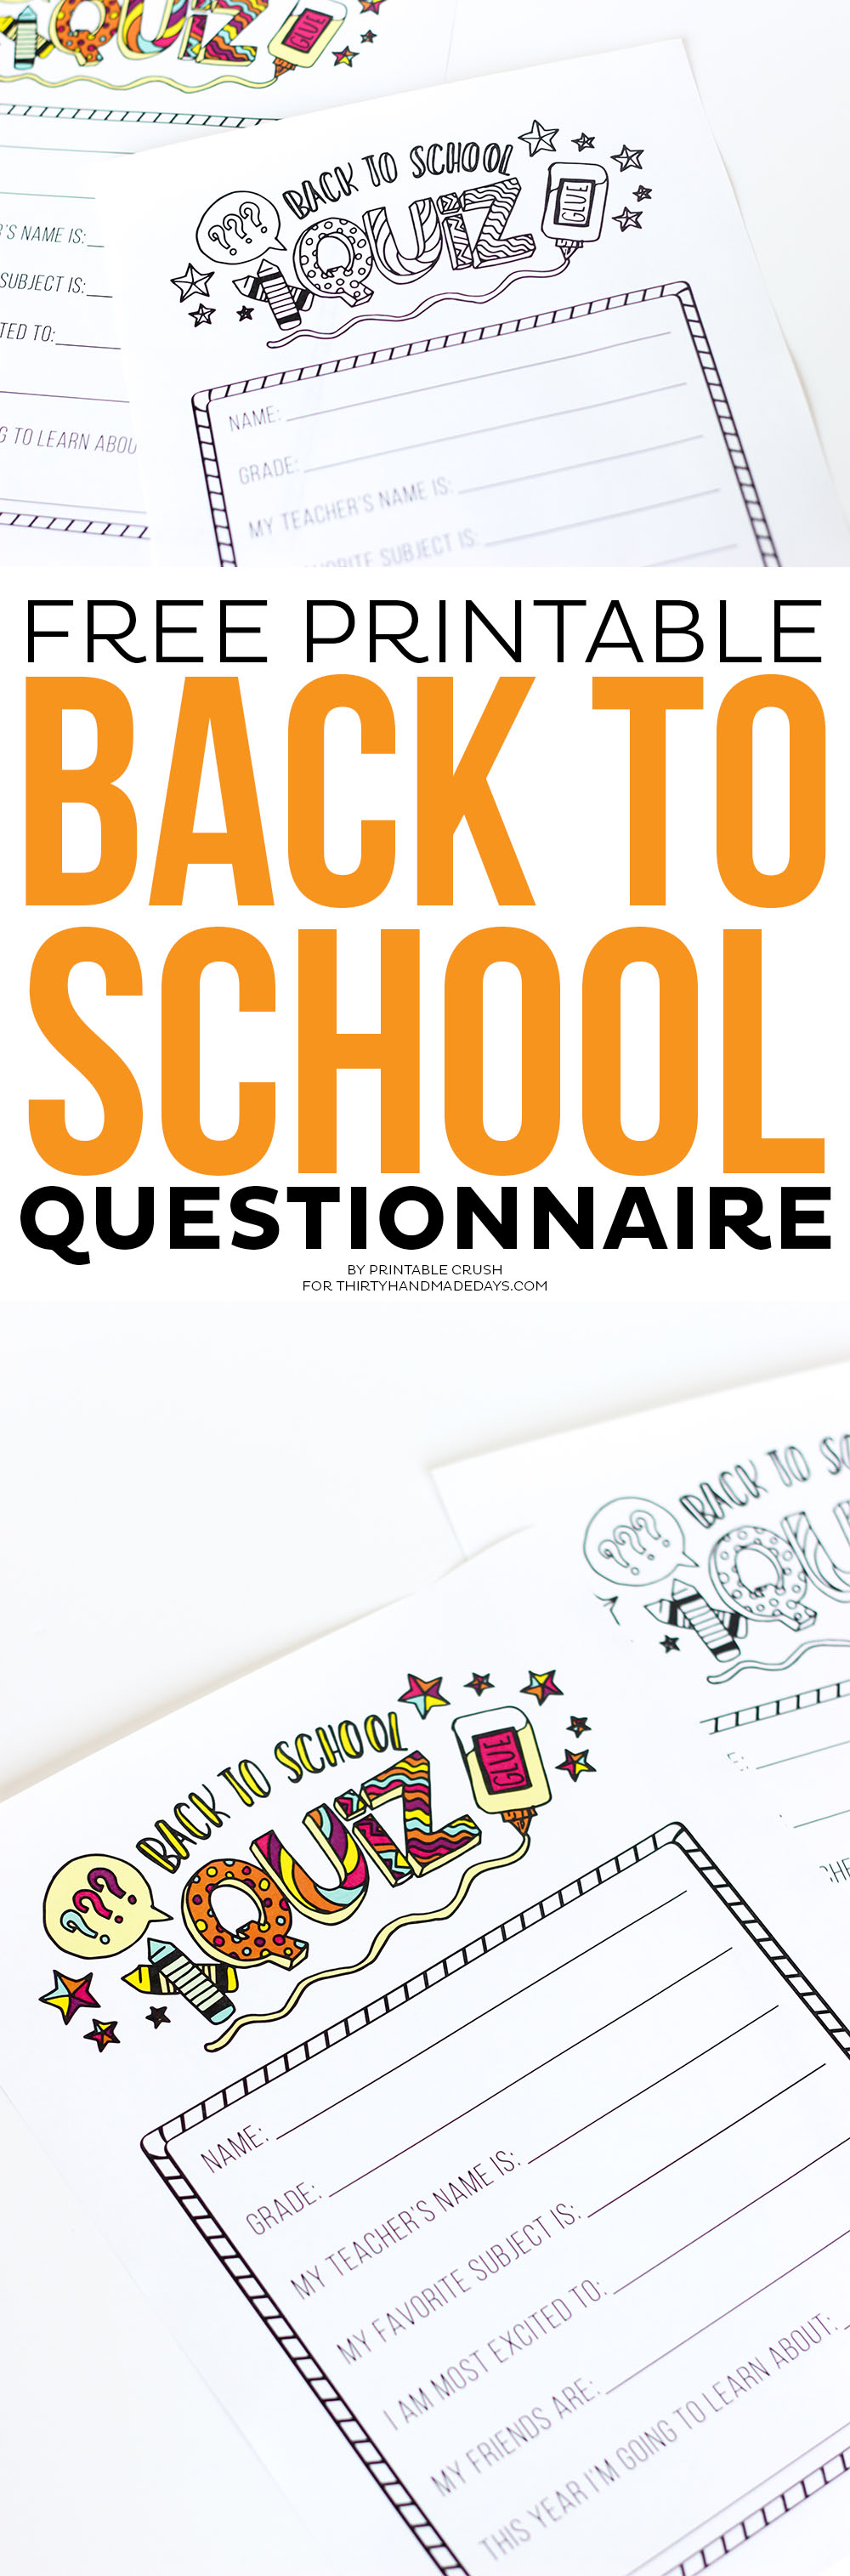 This FREE Printable Back to School Questionnaire is a great way to keep memories. Plus, it doubles as a coloring page so kids can be creative!